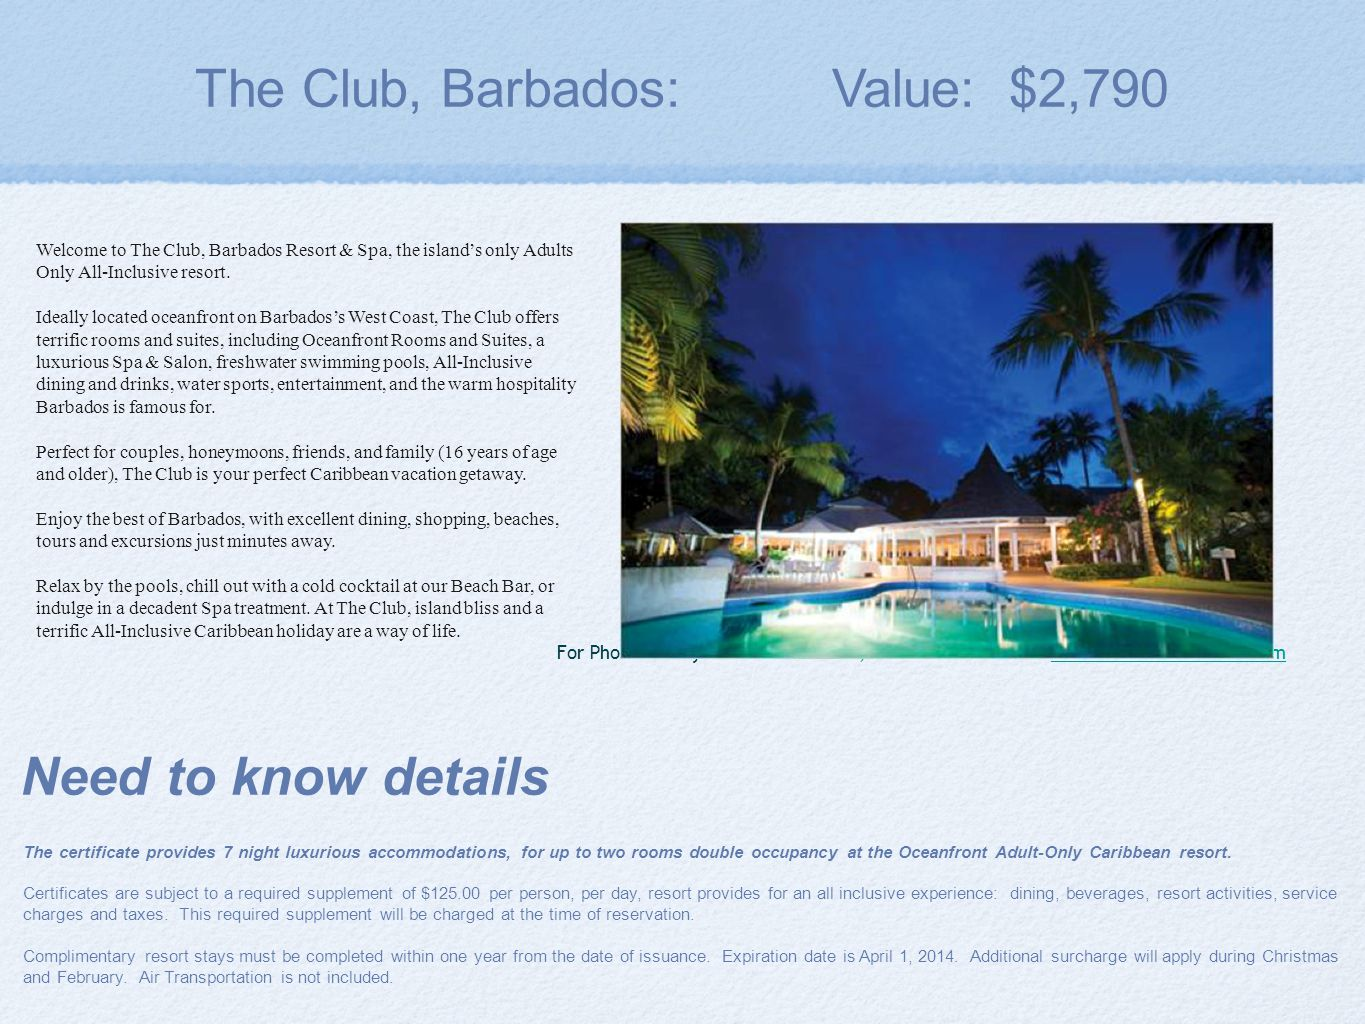 The Club, Barbados: Value: $2,790 Need to know details The certificate provides 7 night luxurious accommodations, for up to two rooms double occupancy at the Oceanfront Adult-Only Caribbean resort.